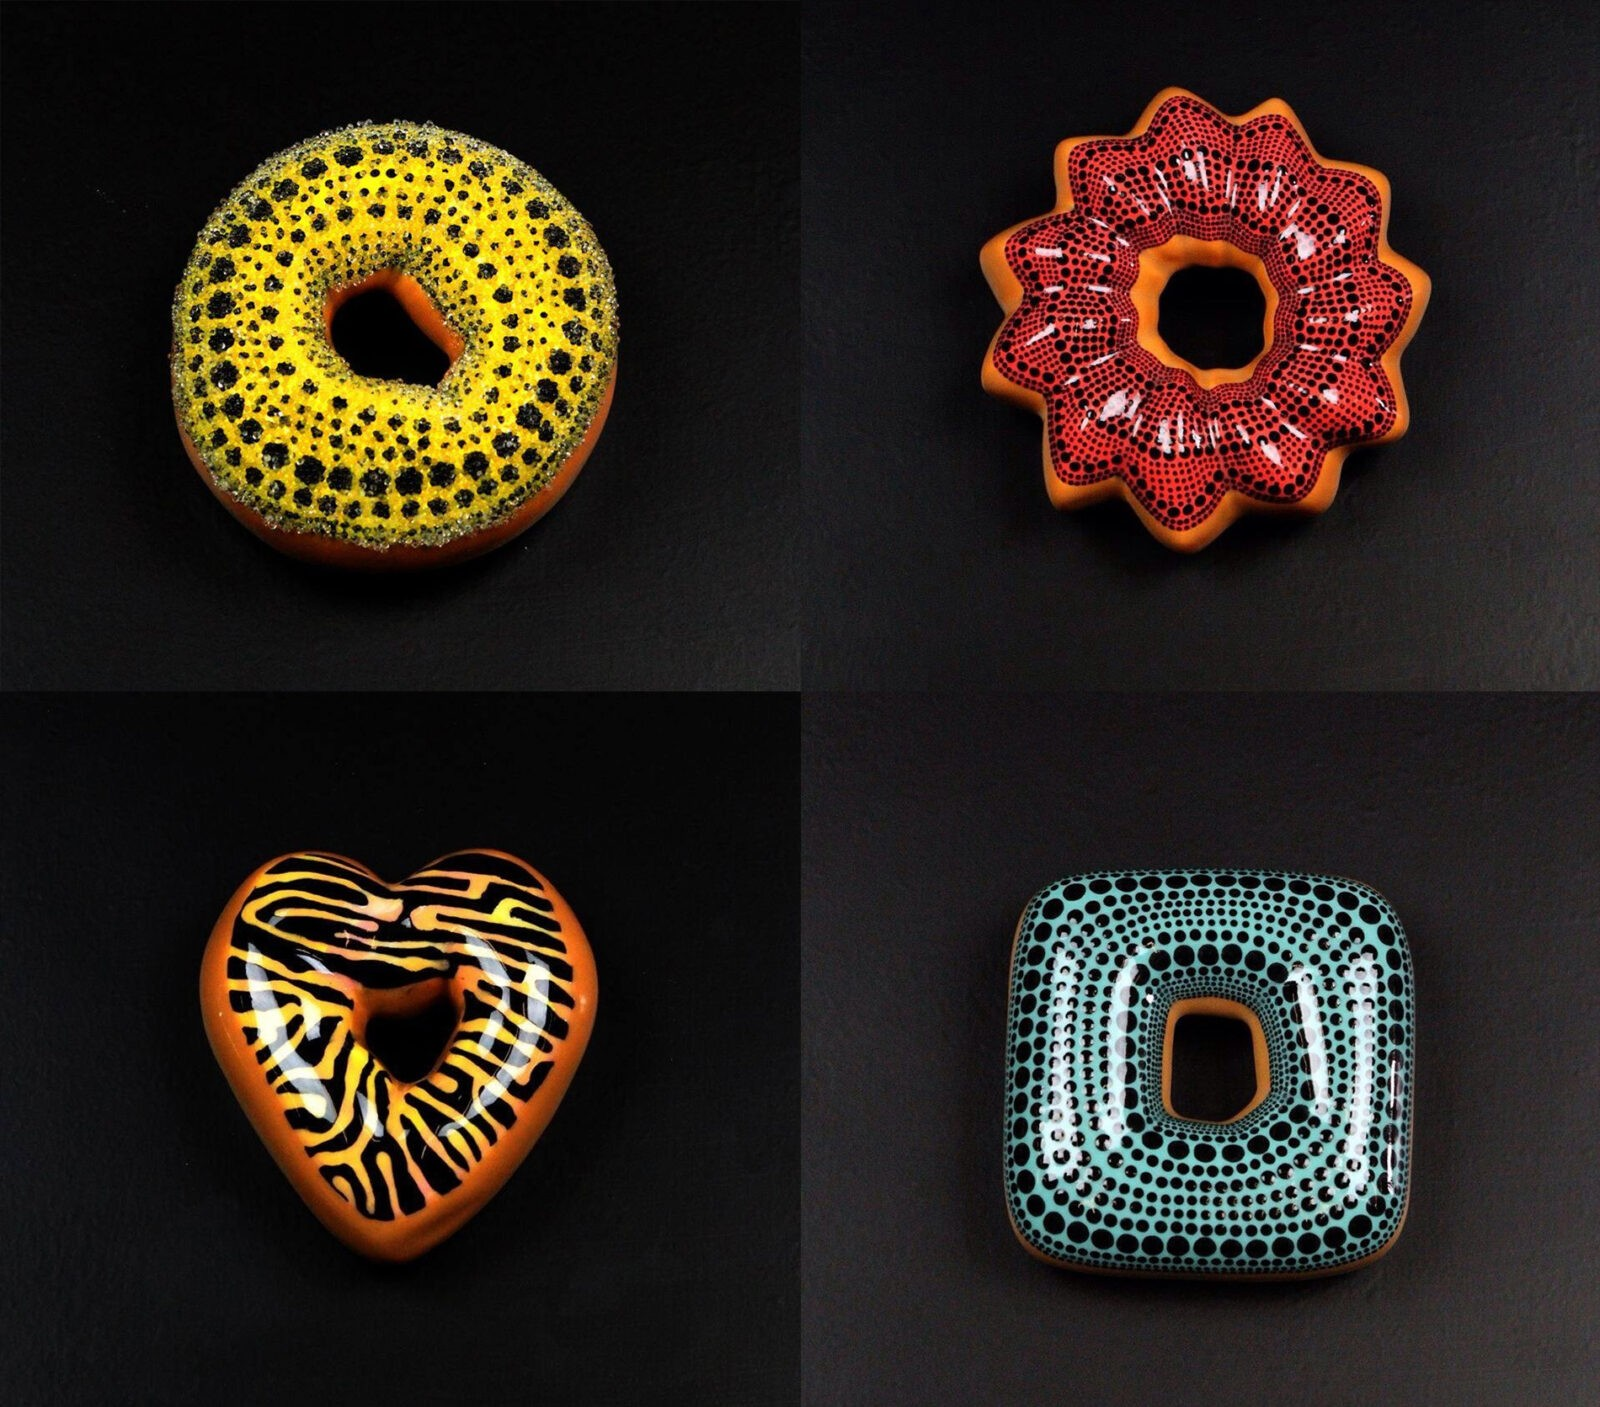 Glazed Ceramic Donuts by Jae Yong Kim